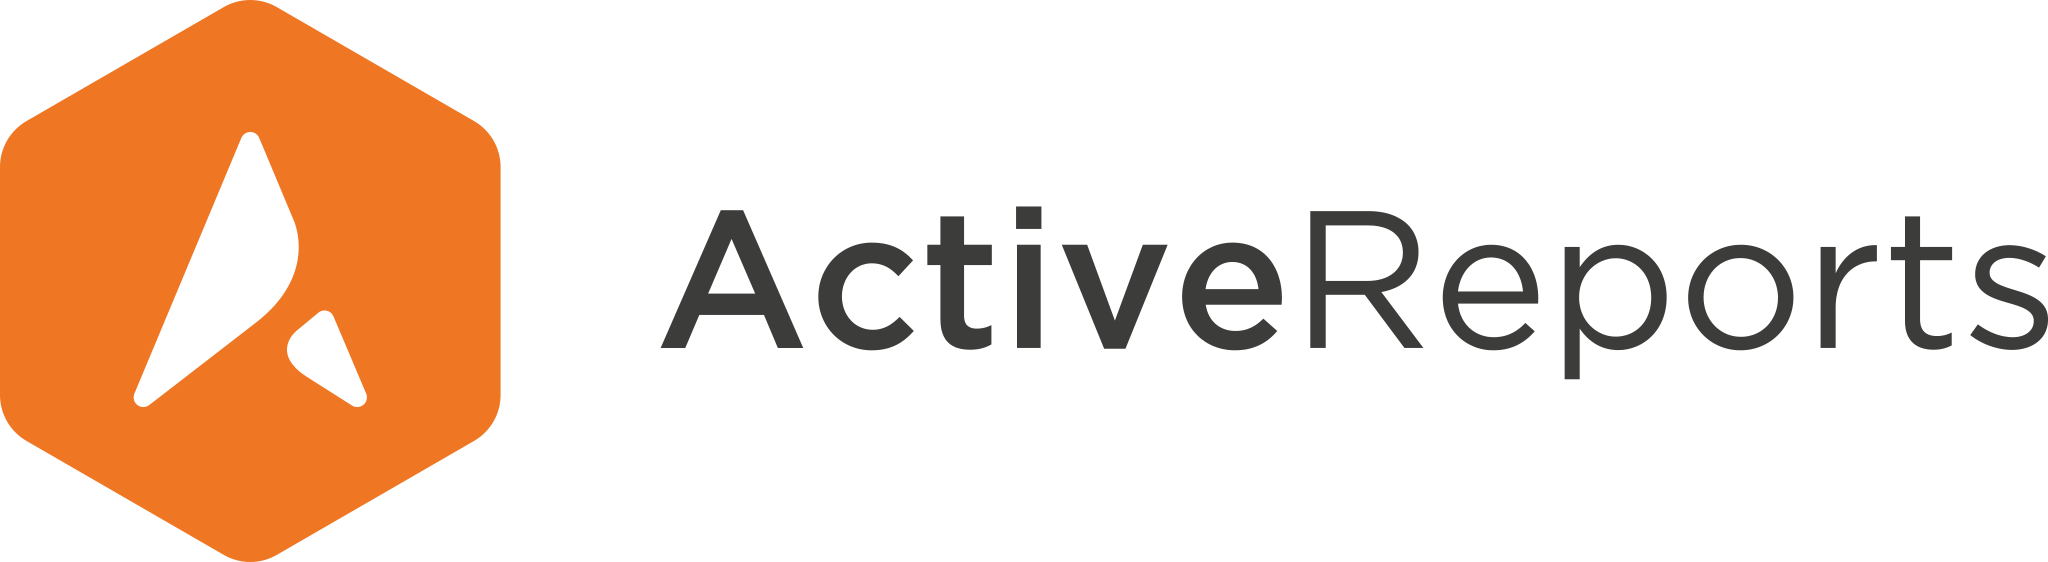 ActiveReports 12 Releases